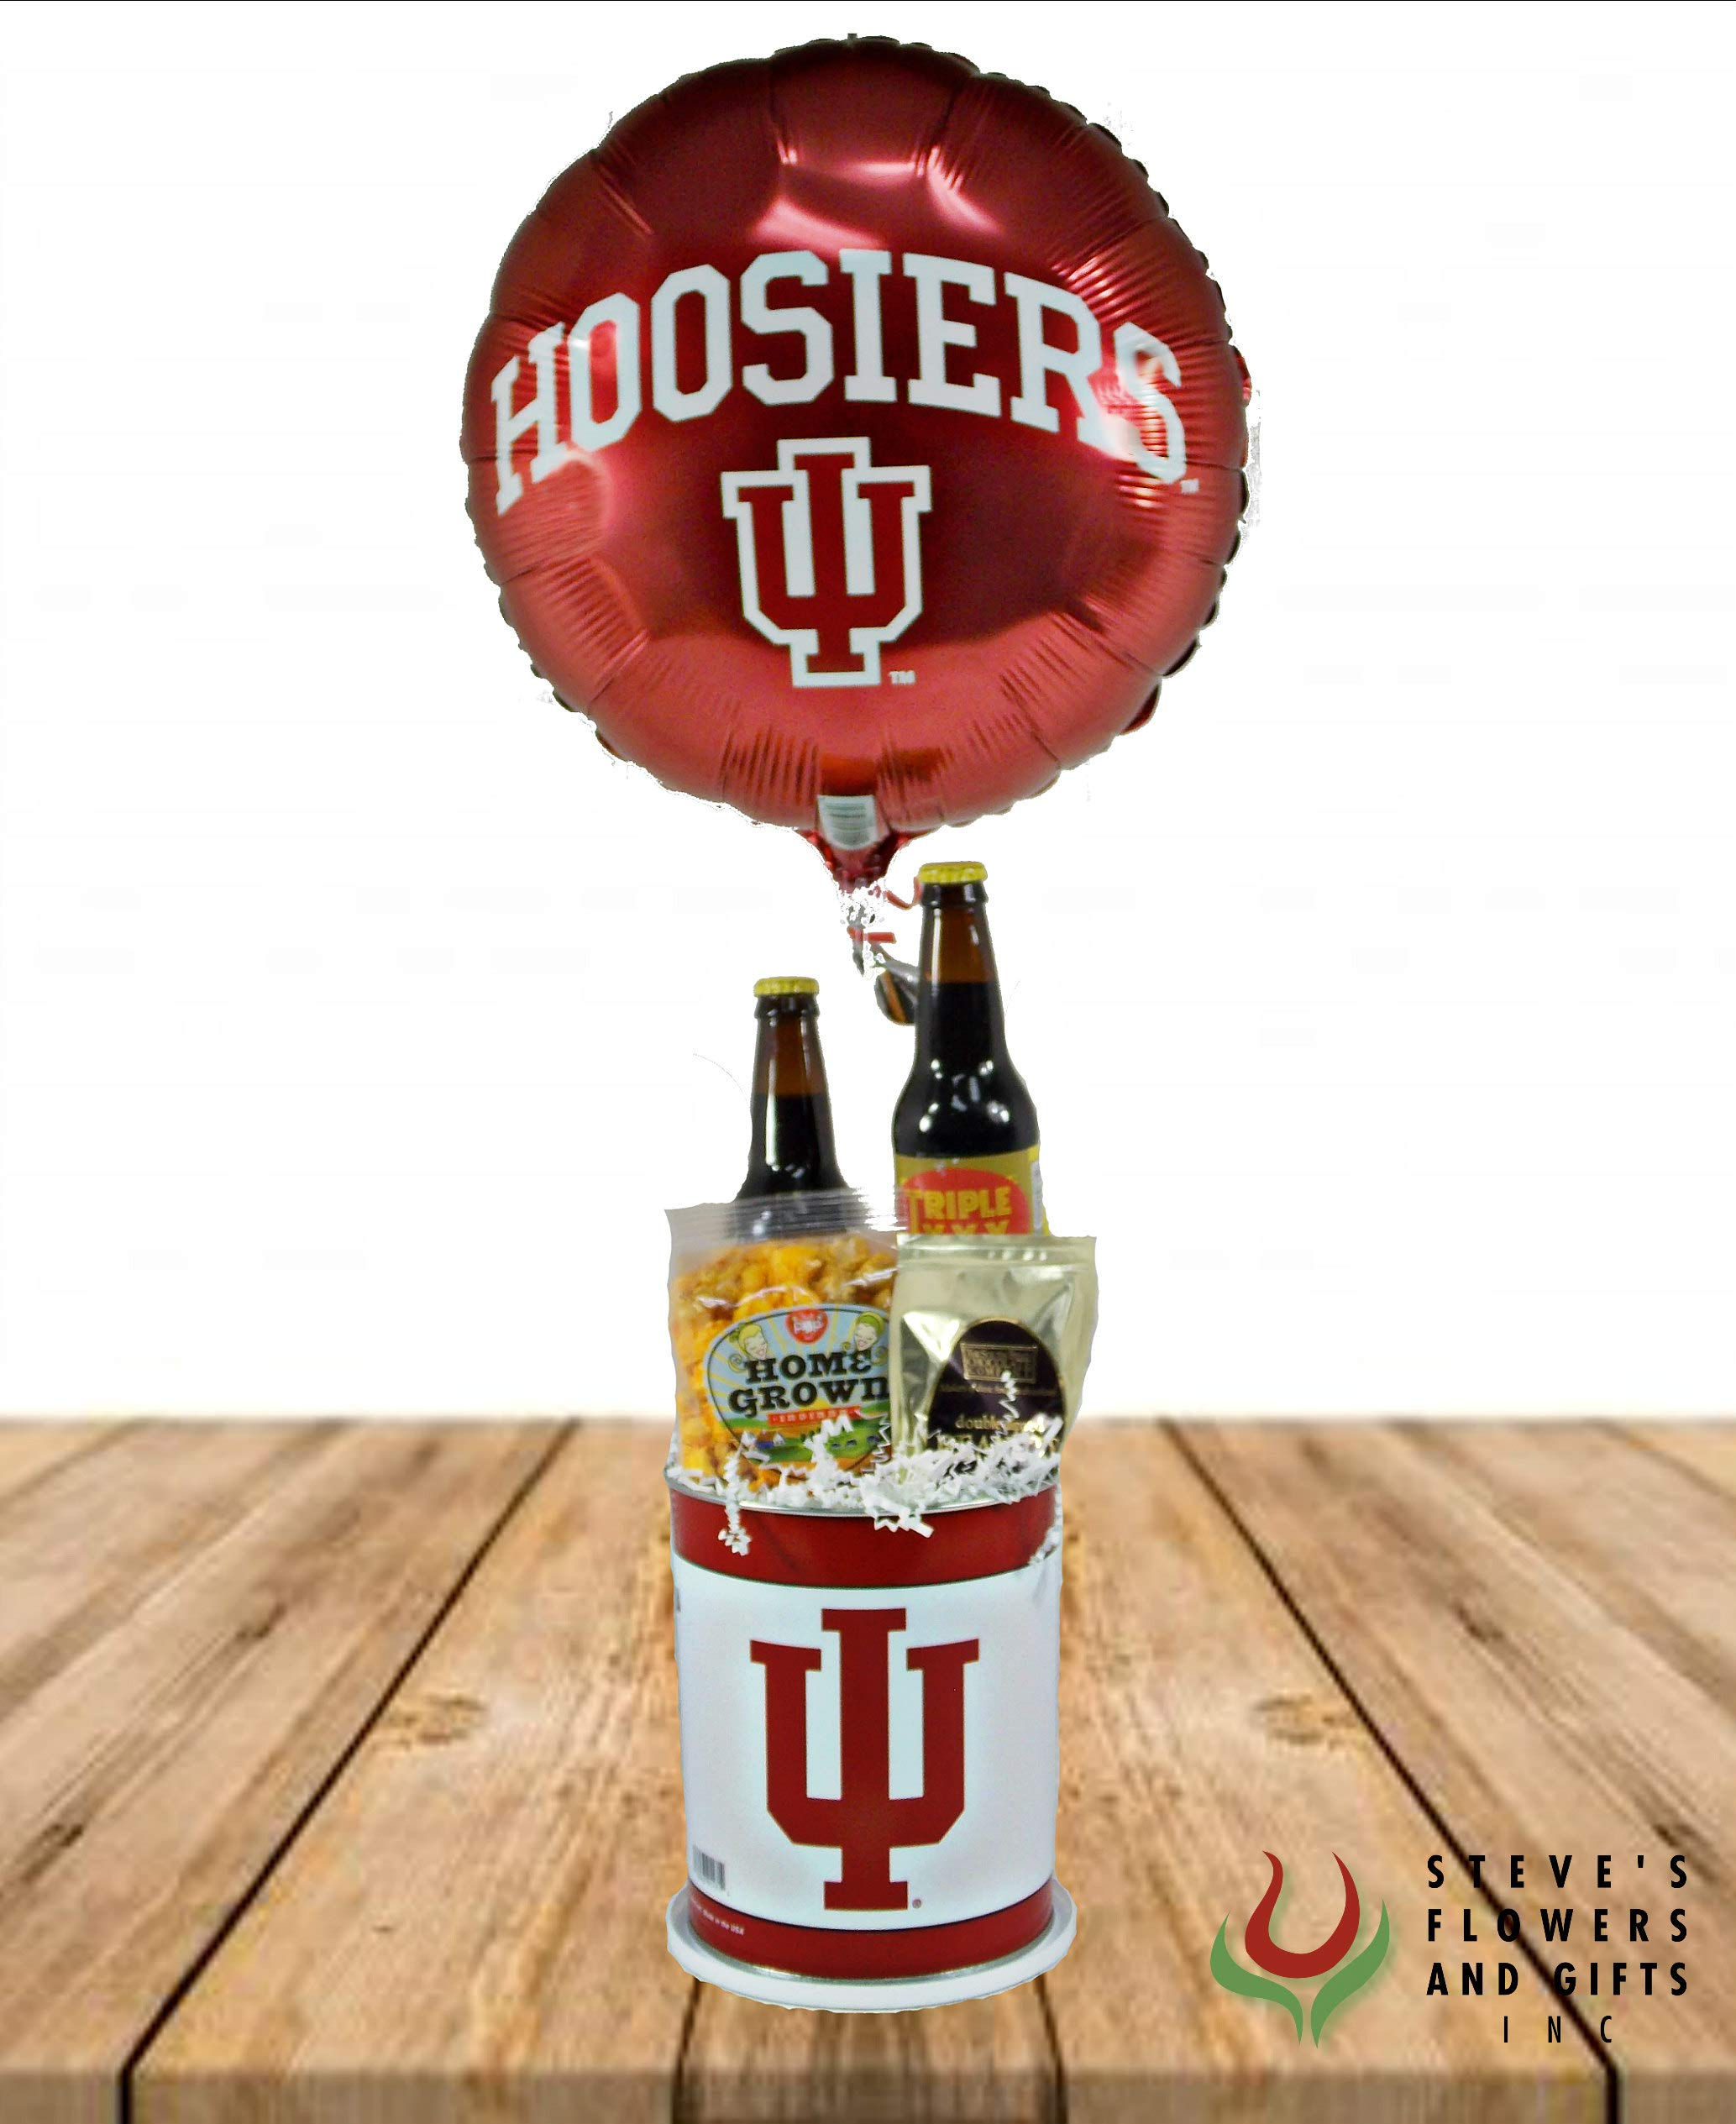 Indiana Hoosiers Gourmet Bucket by Steve's Flowers and Gifts - Fresh Flowers Hand Delivered - Indianapolis Area